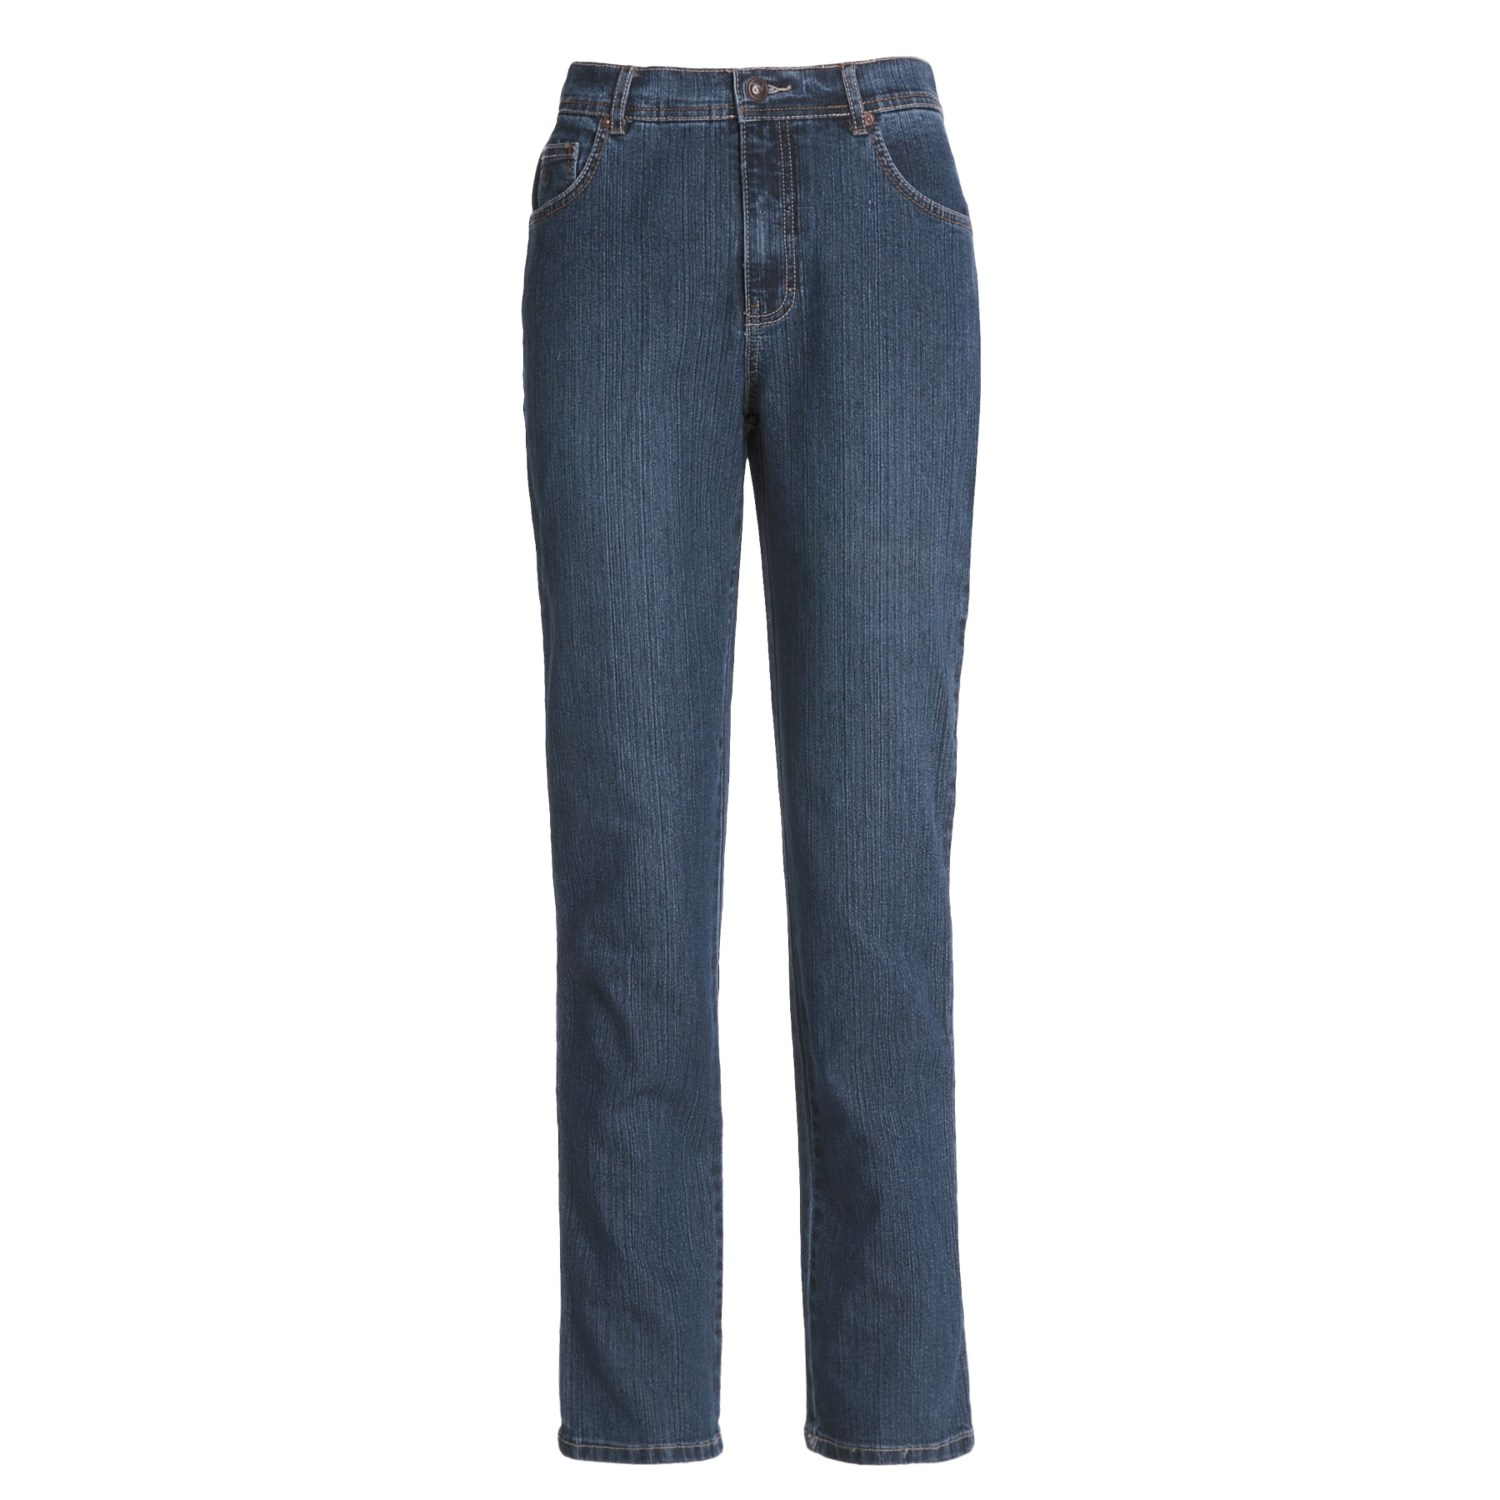 Blue Denim Jeans For Women